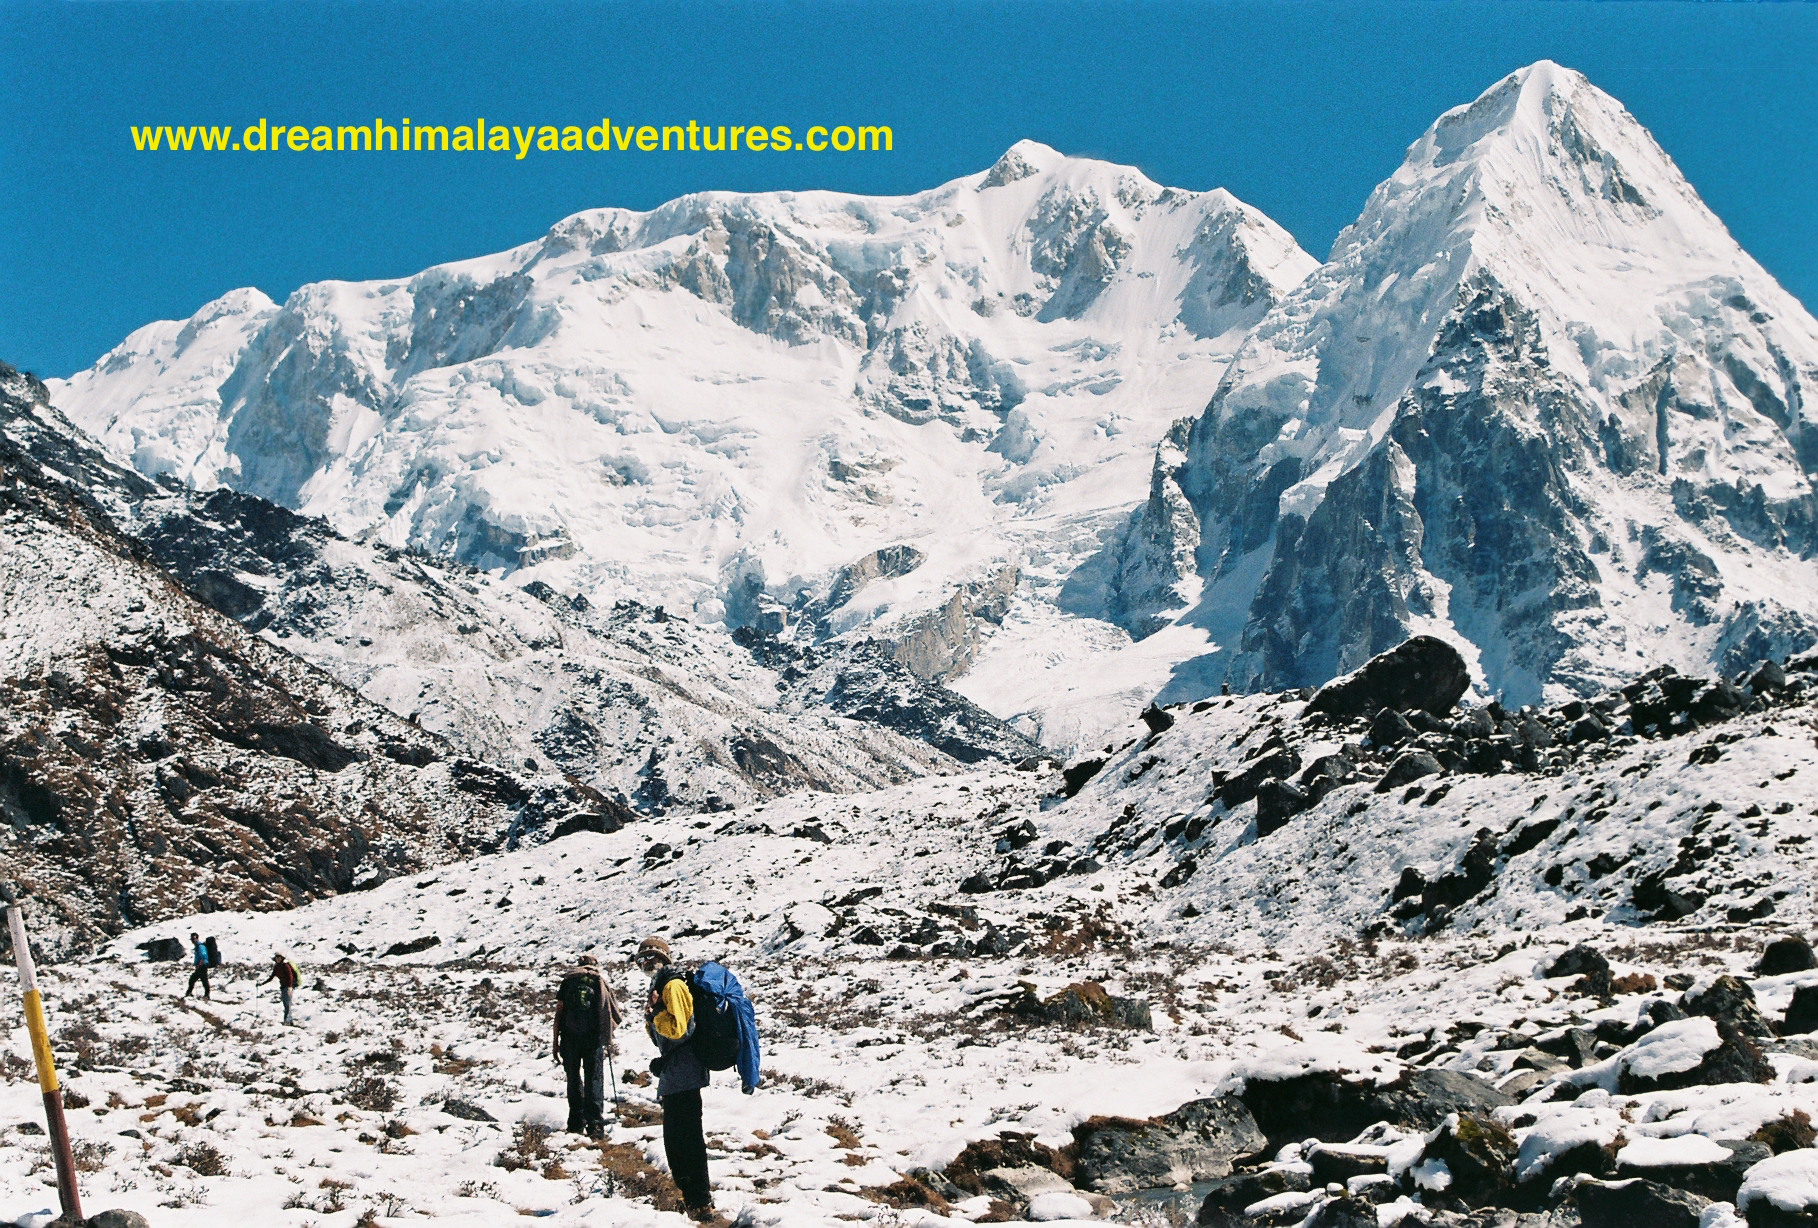 Kabra (left) & Rathng (right) in Kanchenjunga Circuit Trekking